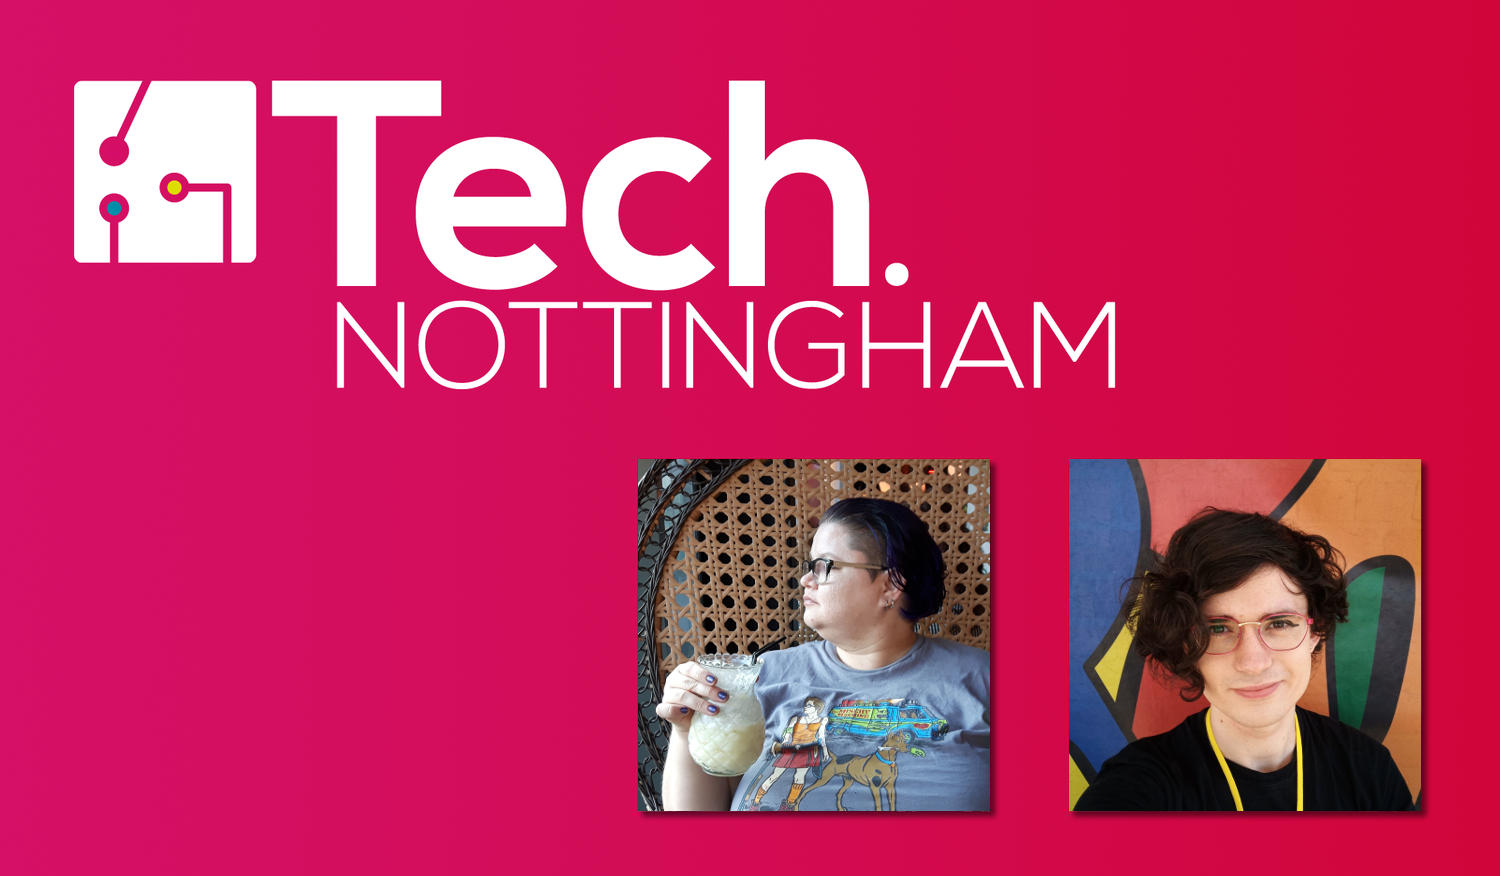 Tech-Nott-banner-August-2019.png